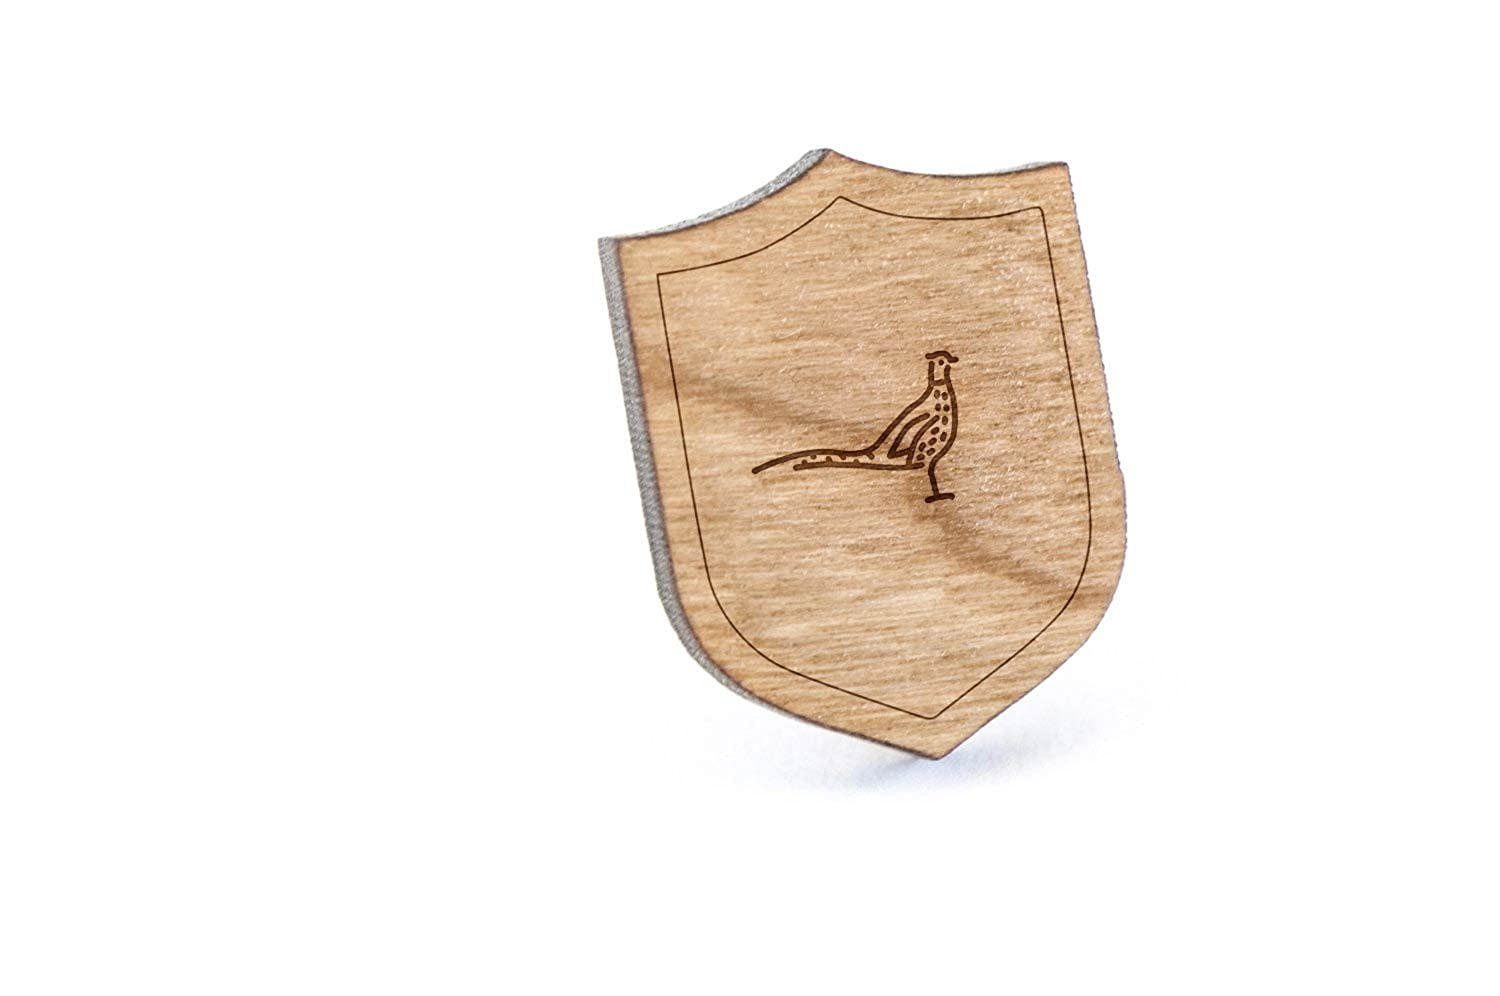 new Pheasant Lapel Pin, Wooden Pin And Tie Tack | Rustic And Minimalistic Groomsmen Gifts And Wedding Accessories hot sale